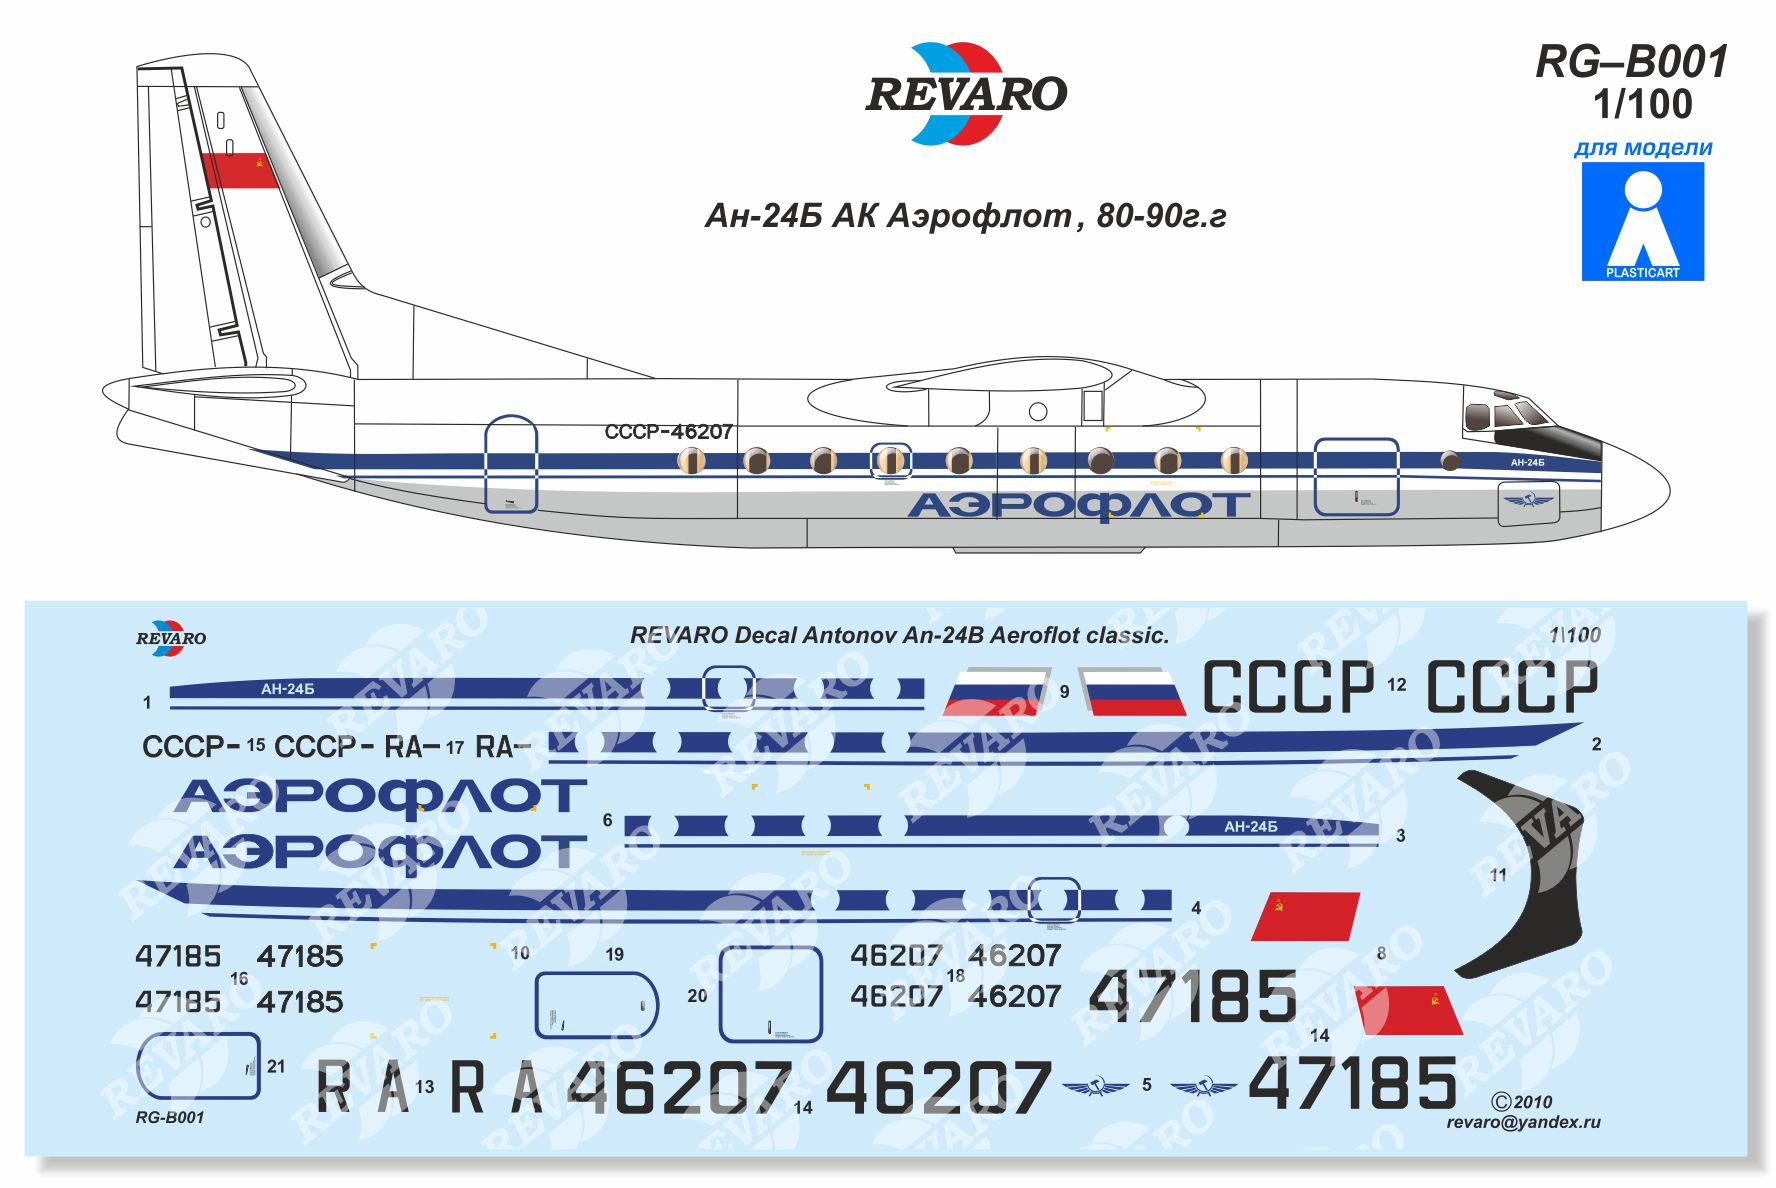 декаль, 1/100, Ан-24 Б, revaro, реваро, An-24 B, decal